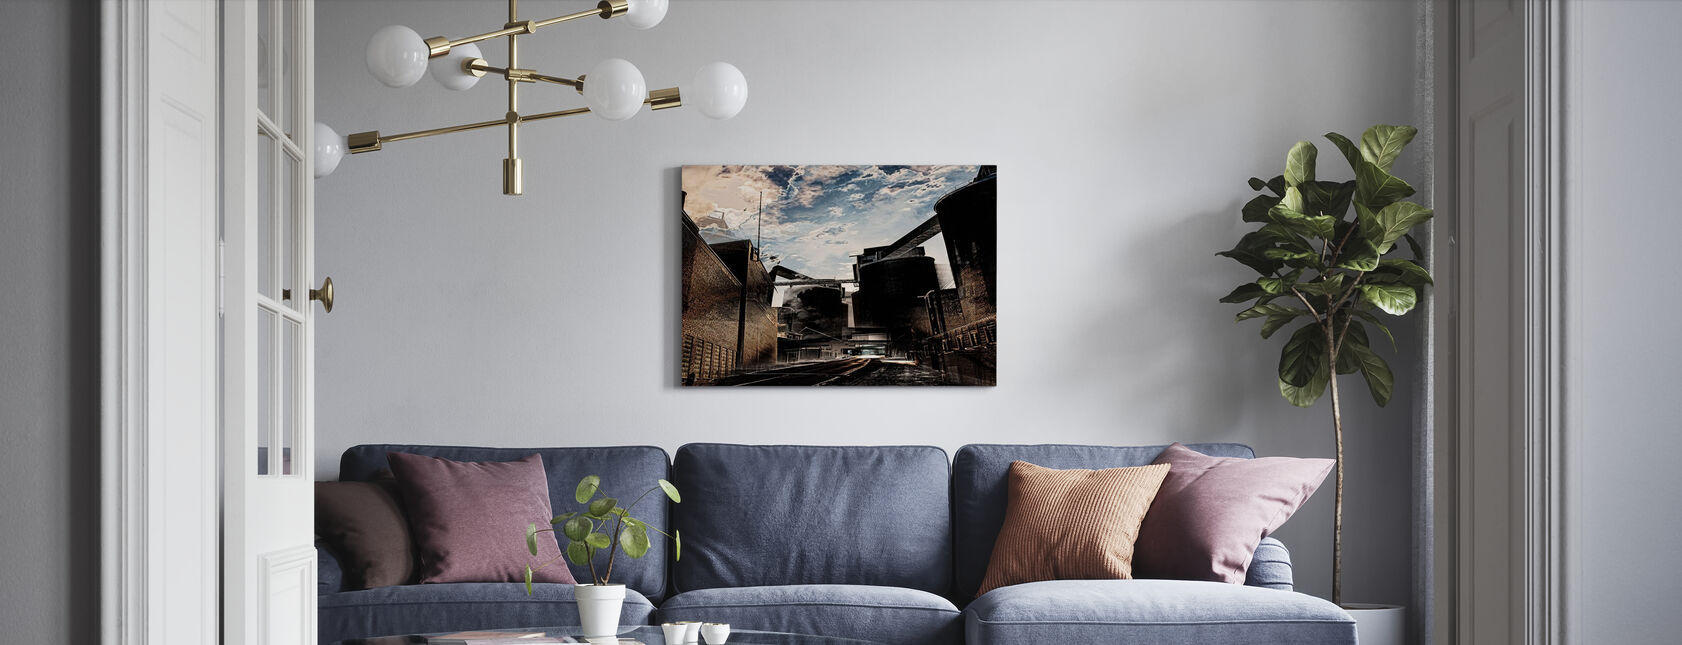 Dramatic Industry - Canvas print - Living Room